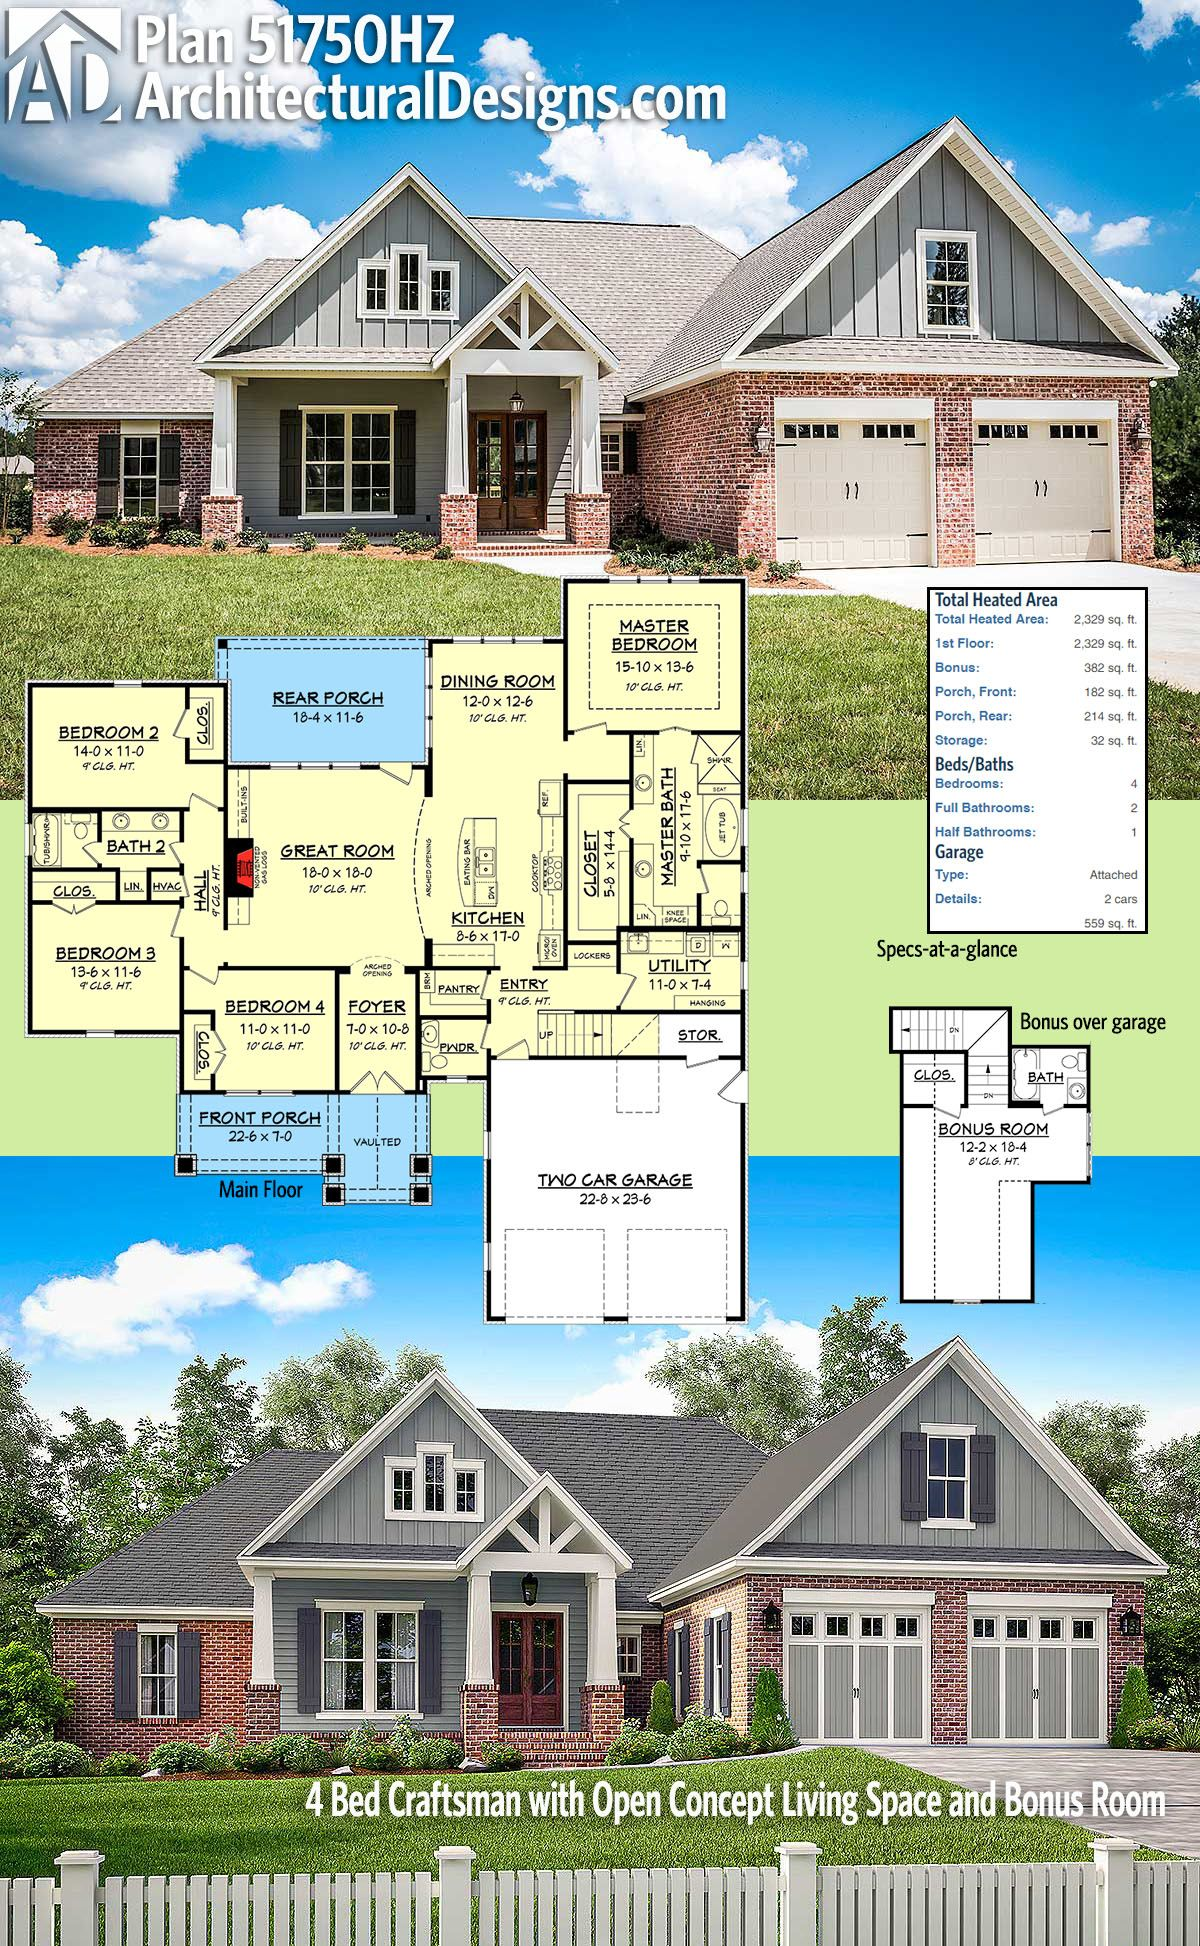 Plan 51750HZ: 4 Bed Craftsman with Open Concept Living Space and ...